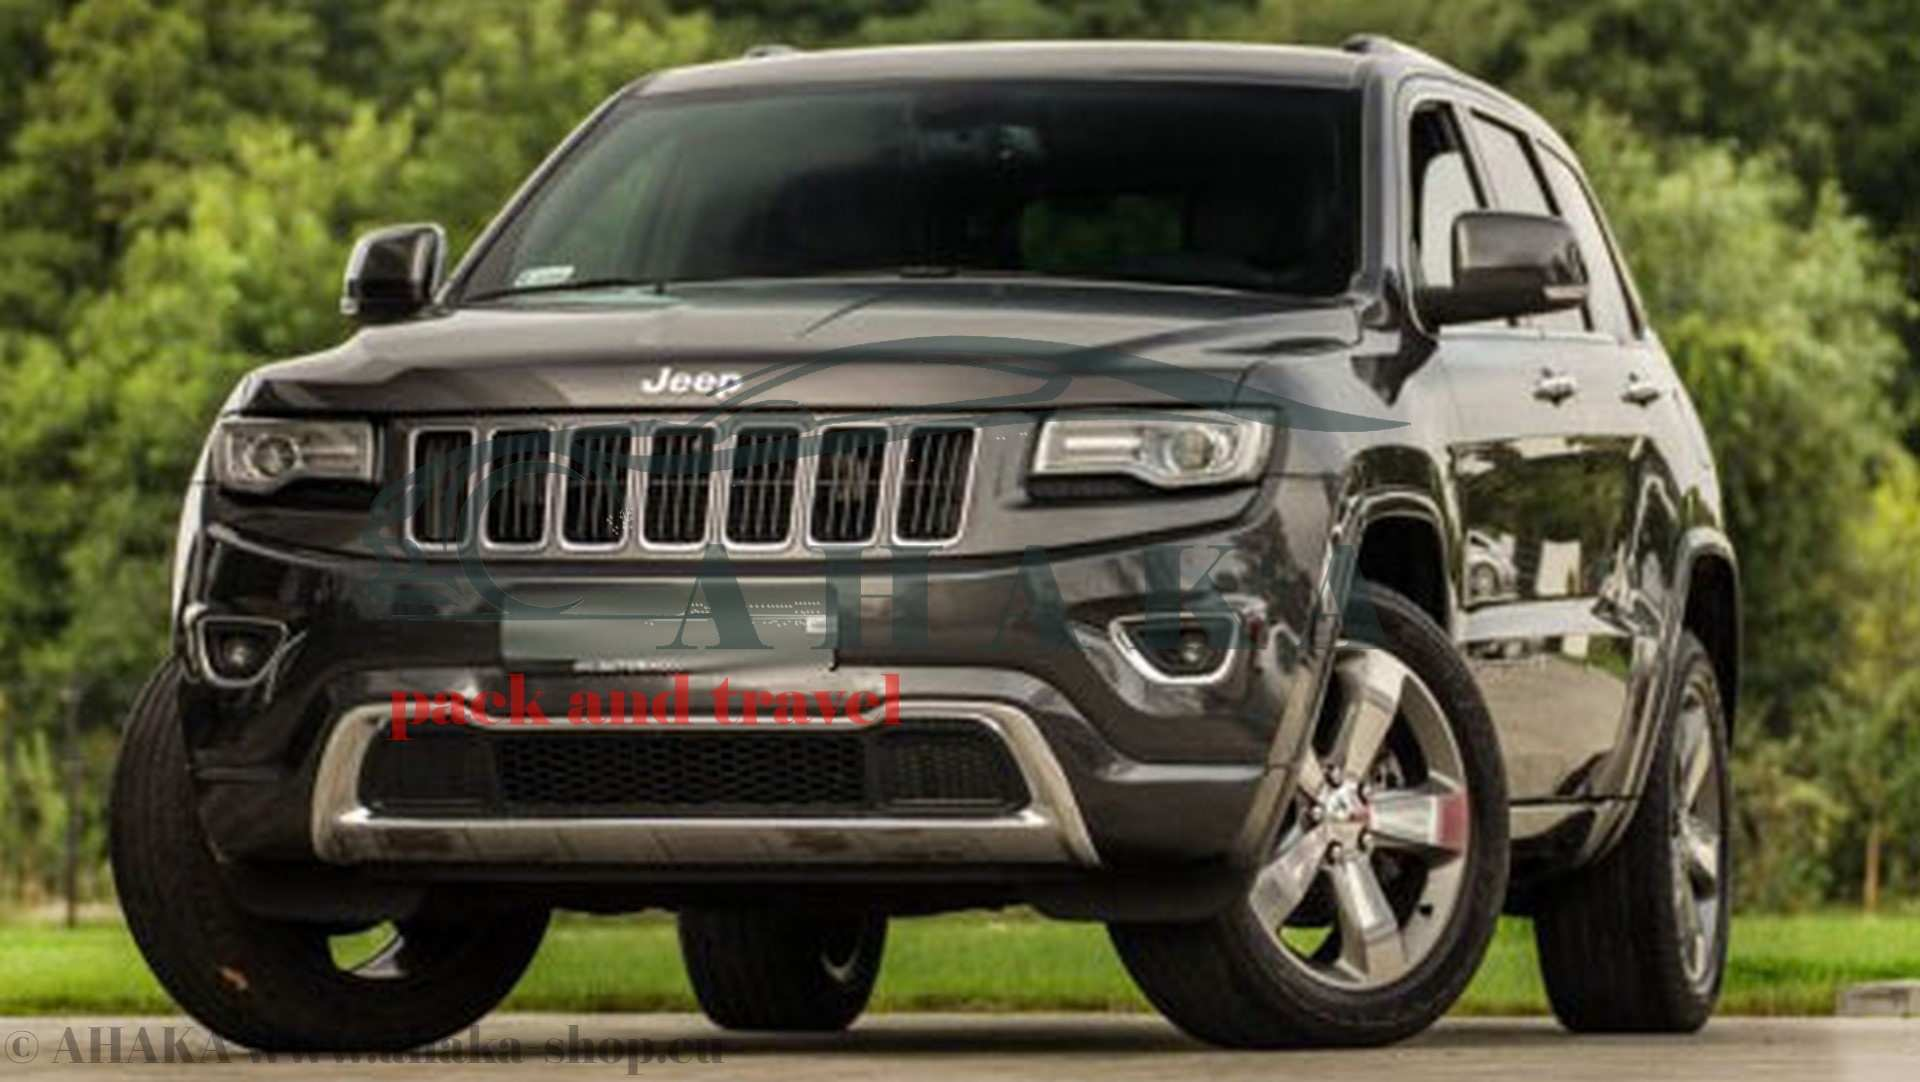 81 A Jeep Grand Cherokee Images